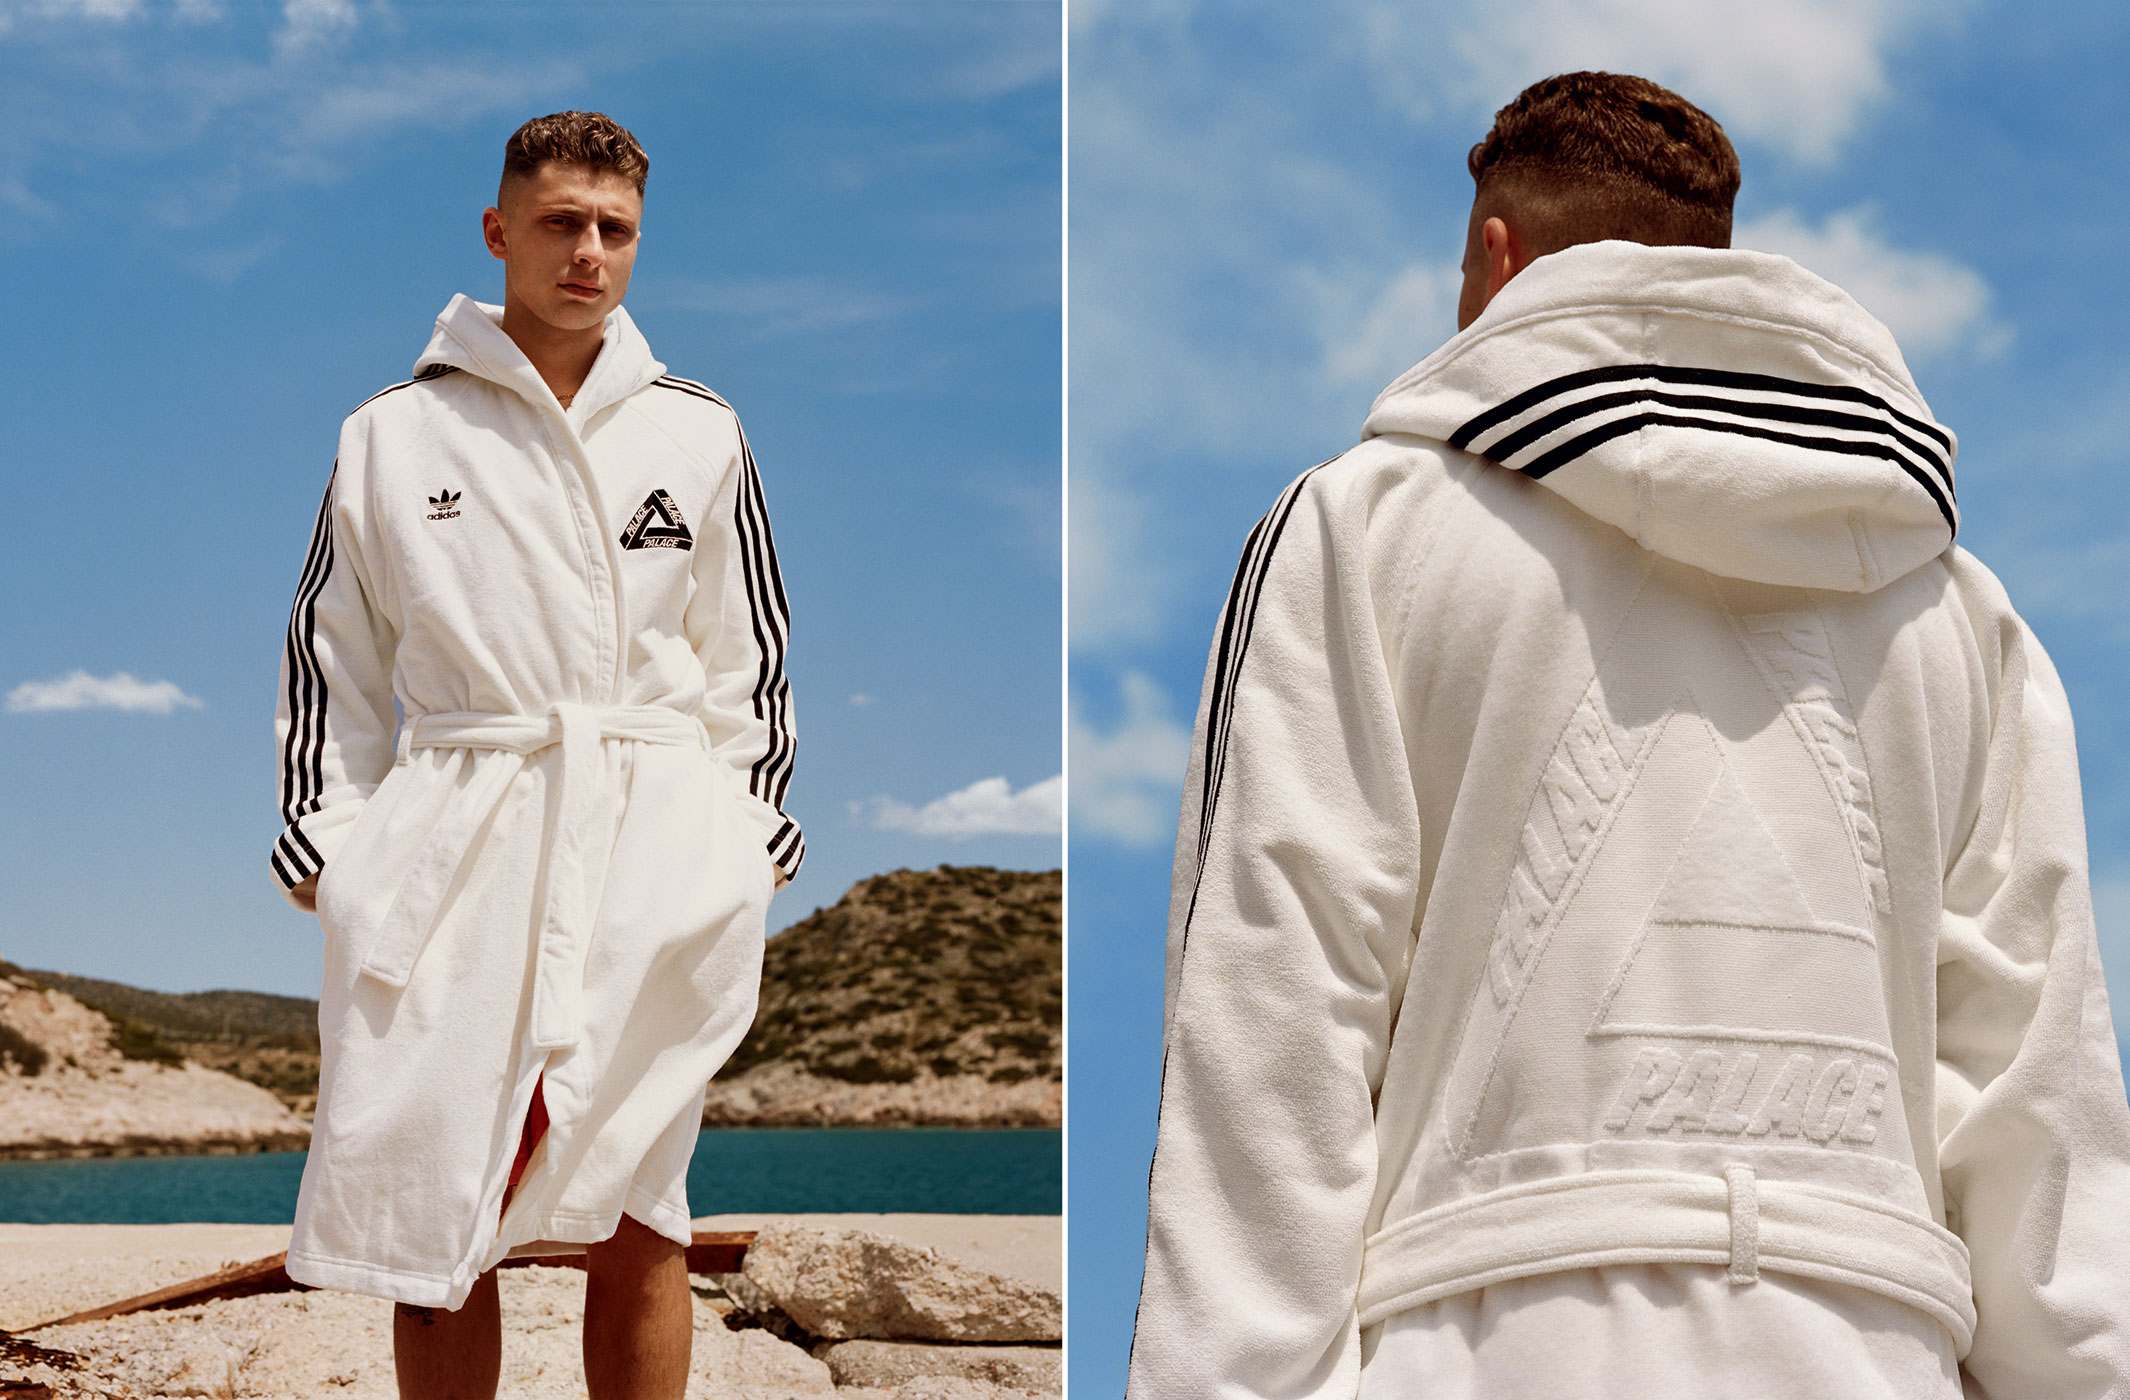 Originals Ss17 X LookbookWave® Palace Adidas 1FKJ5ucl3T